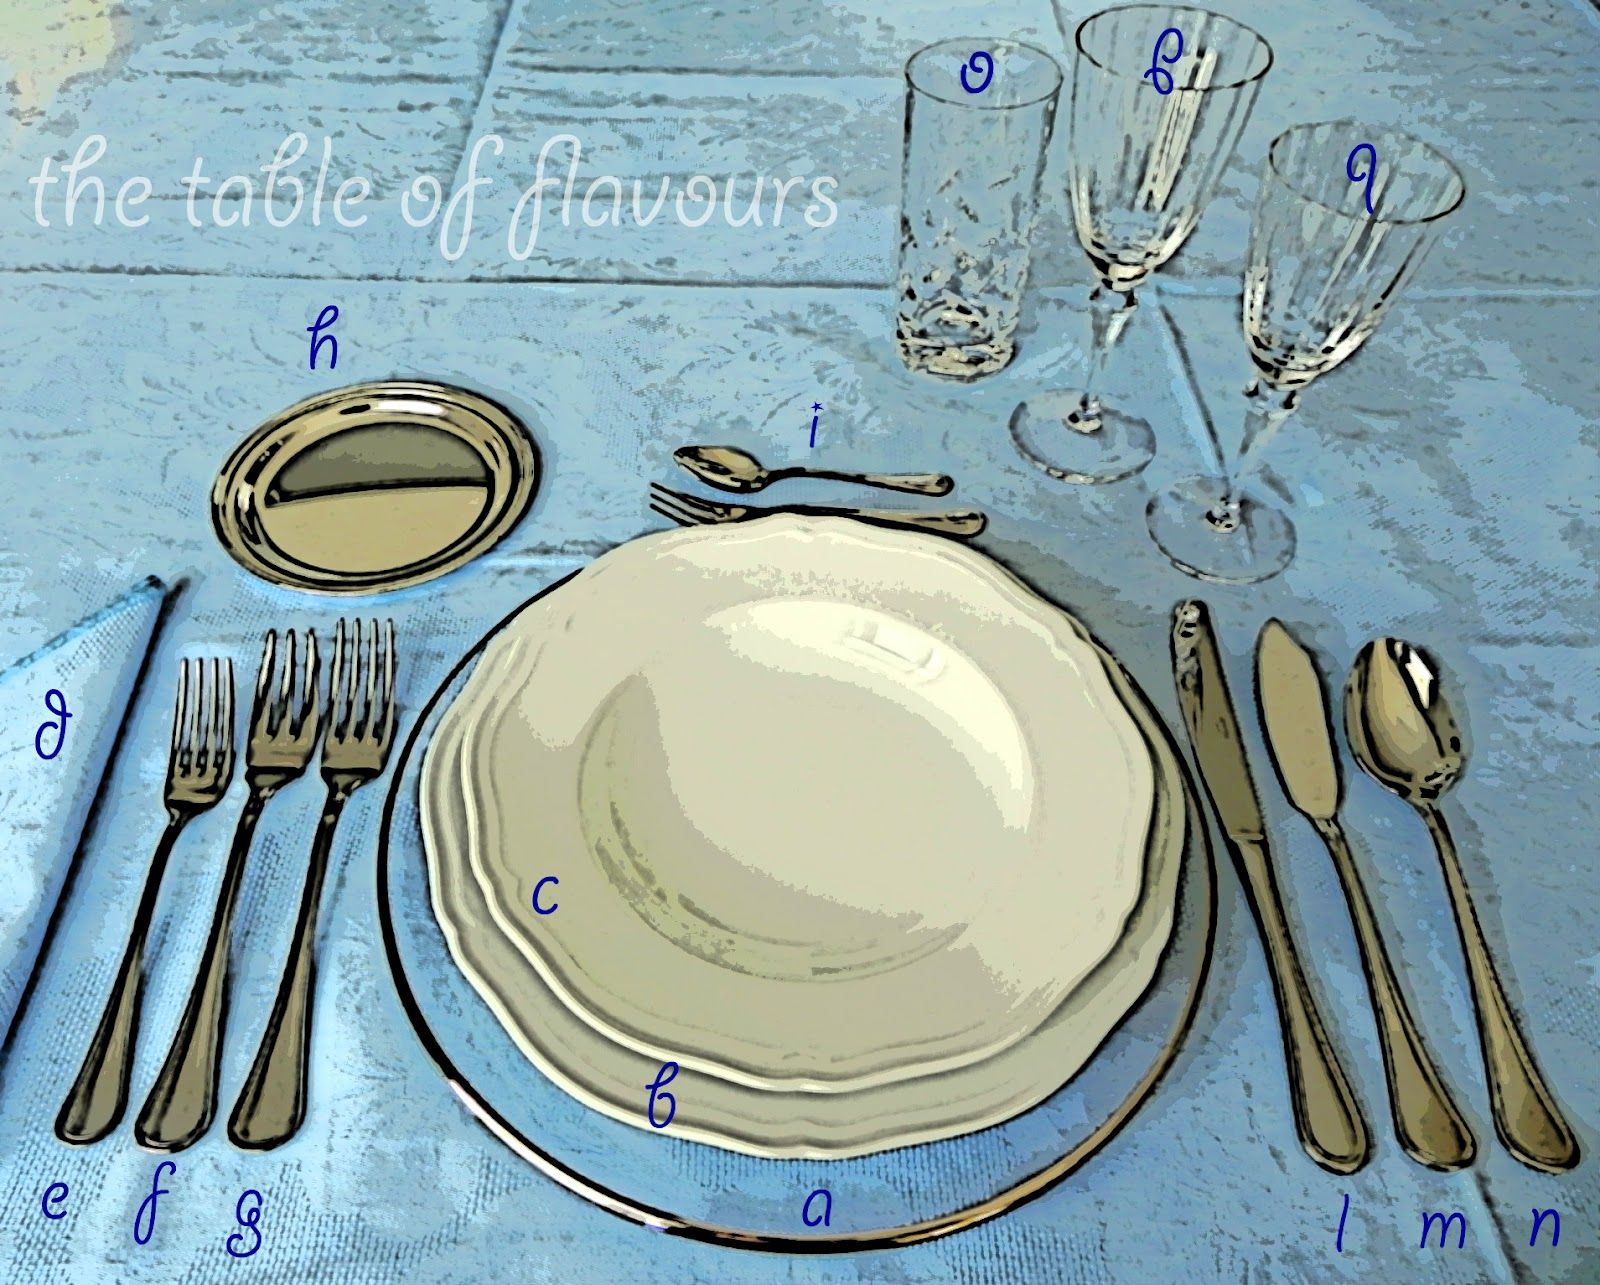 The Table of Flavours  sc 1 st  The Table of Flavours & The Table of Flavours: 5 Basic Rules for the Formal Table Setting